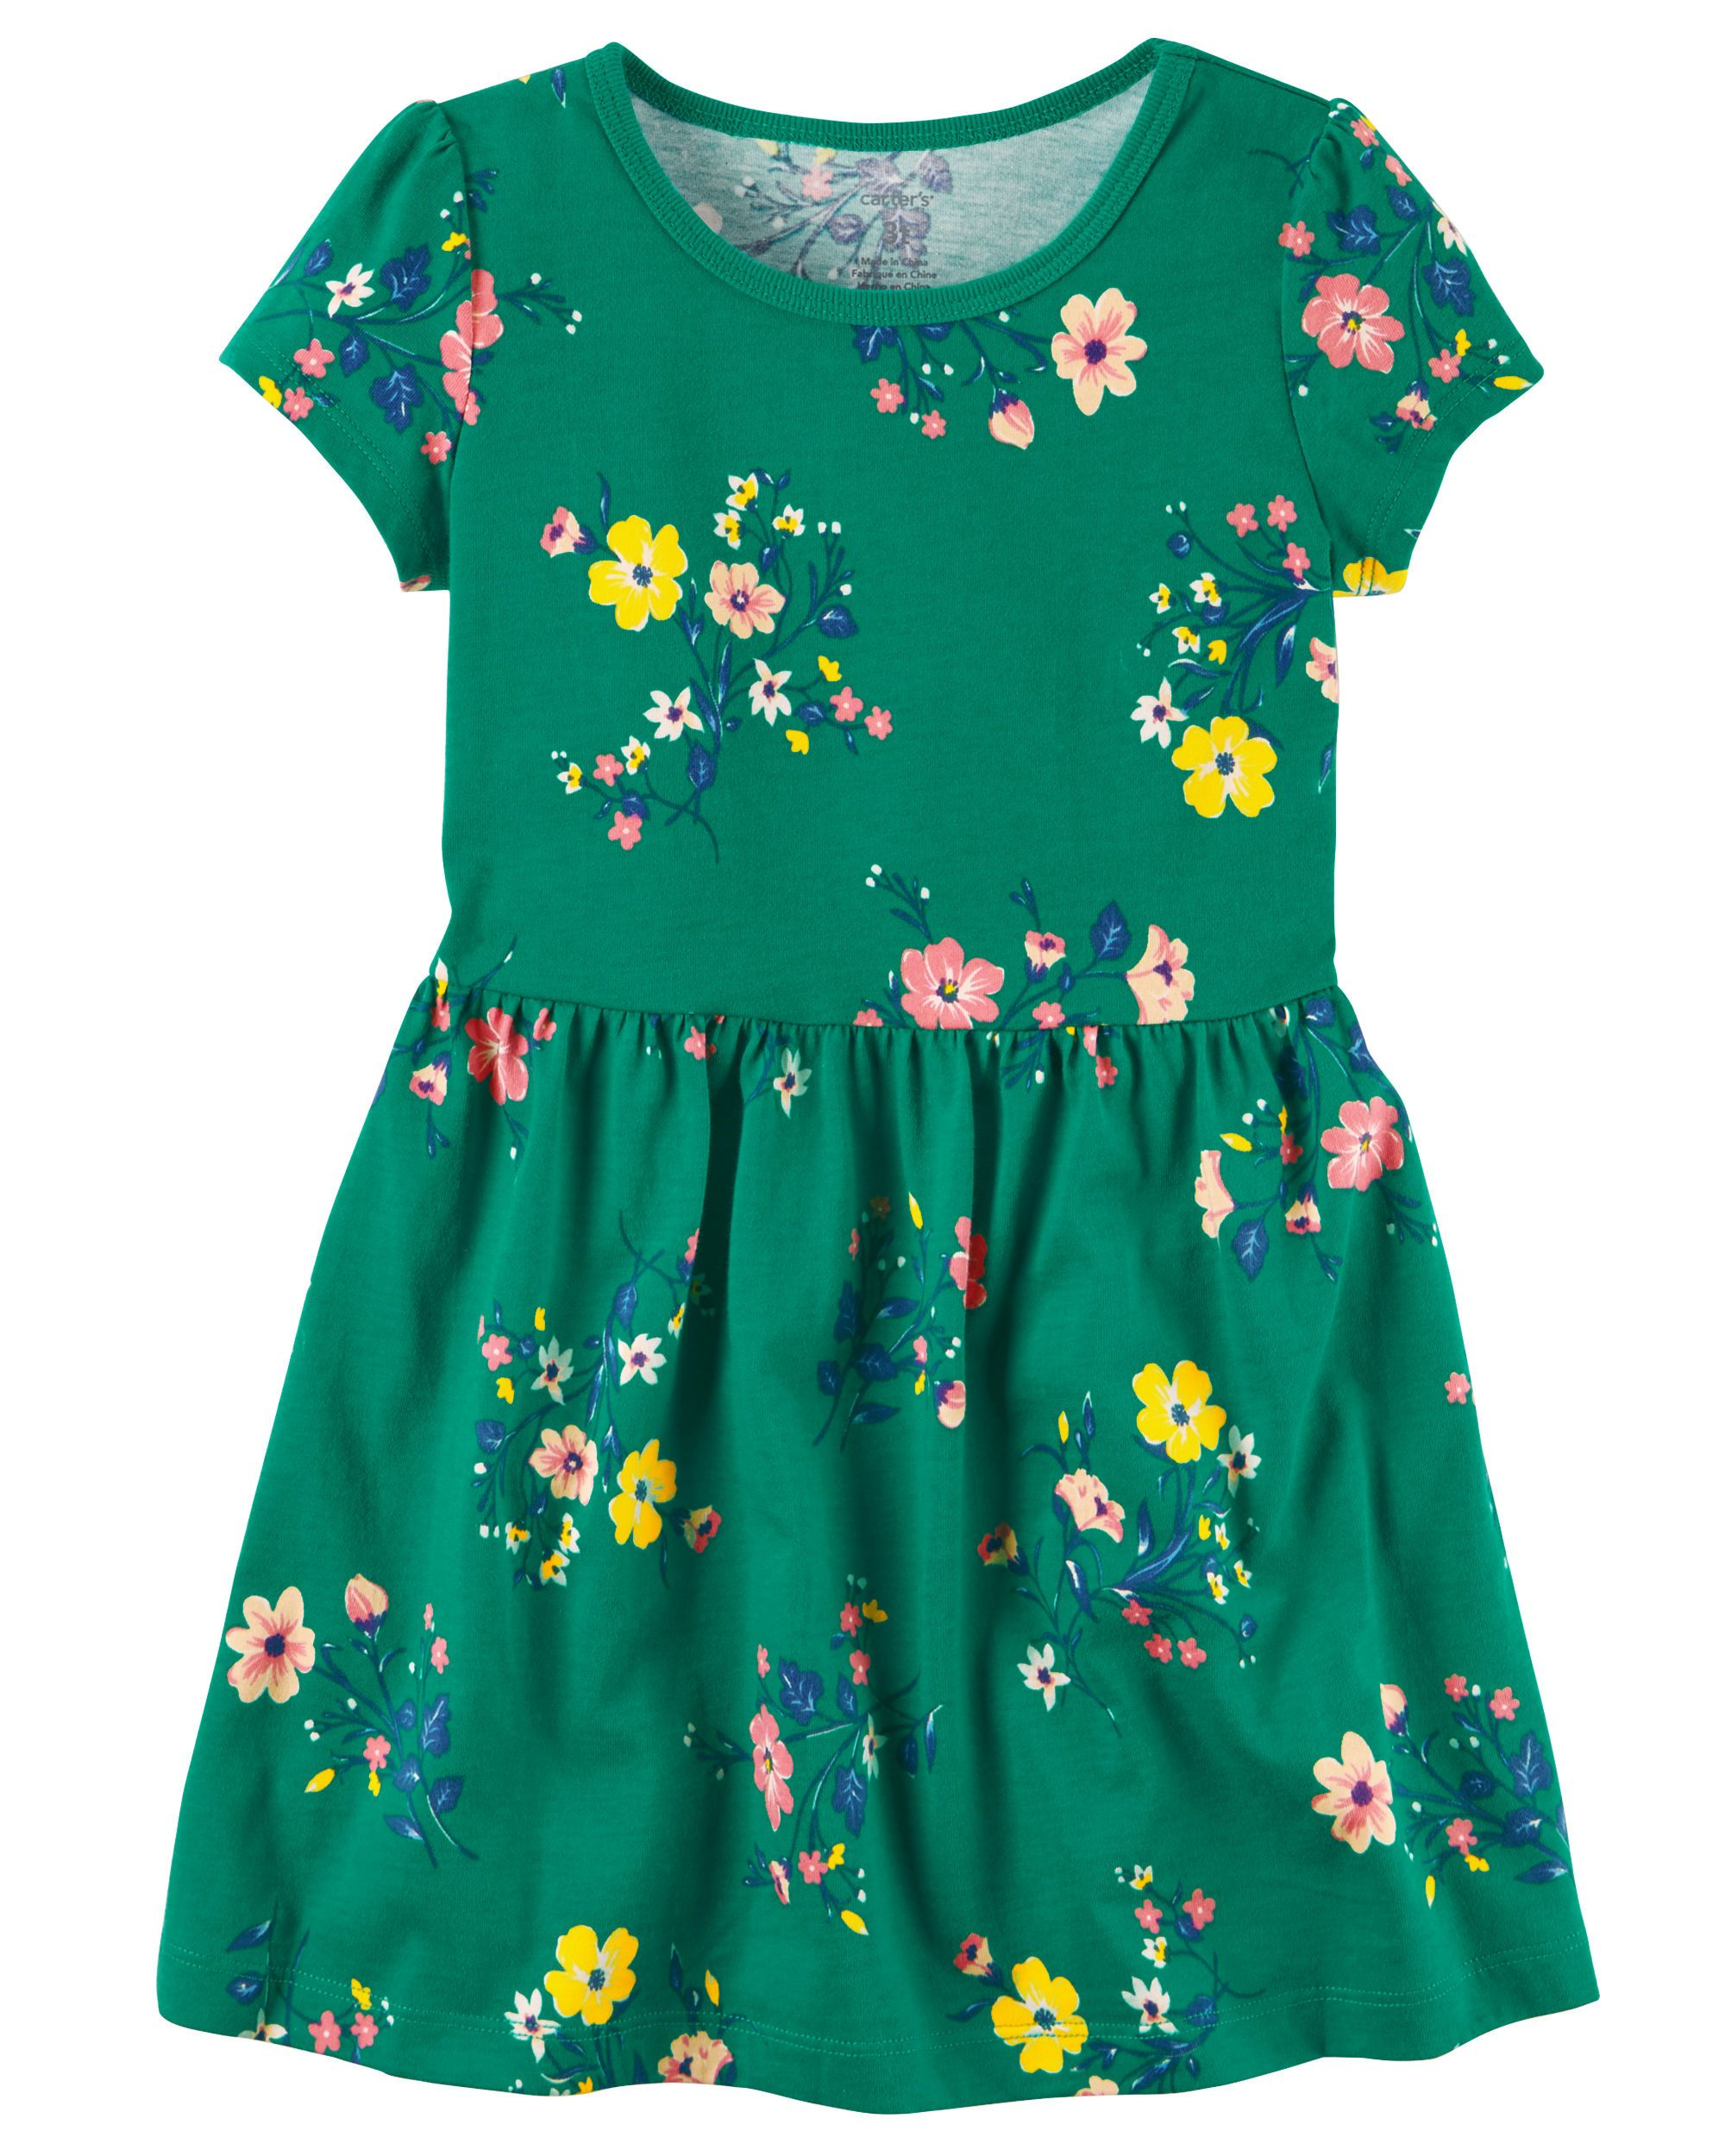 94756629b4ae Kid Girl Floral Jersey Dress | Carters.com | Style | Toddler girl ...